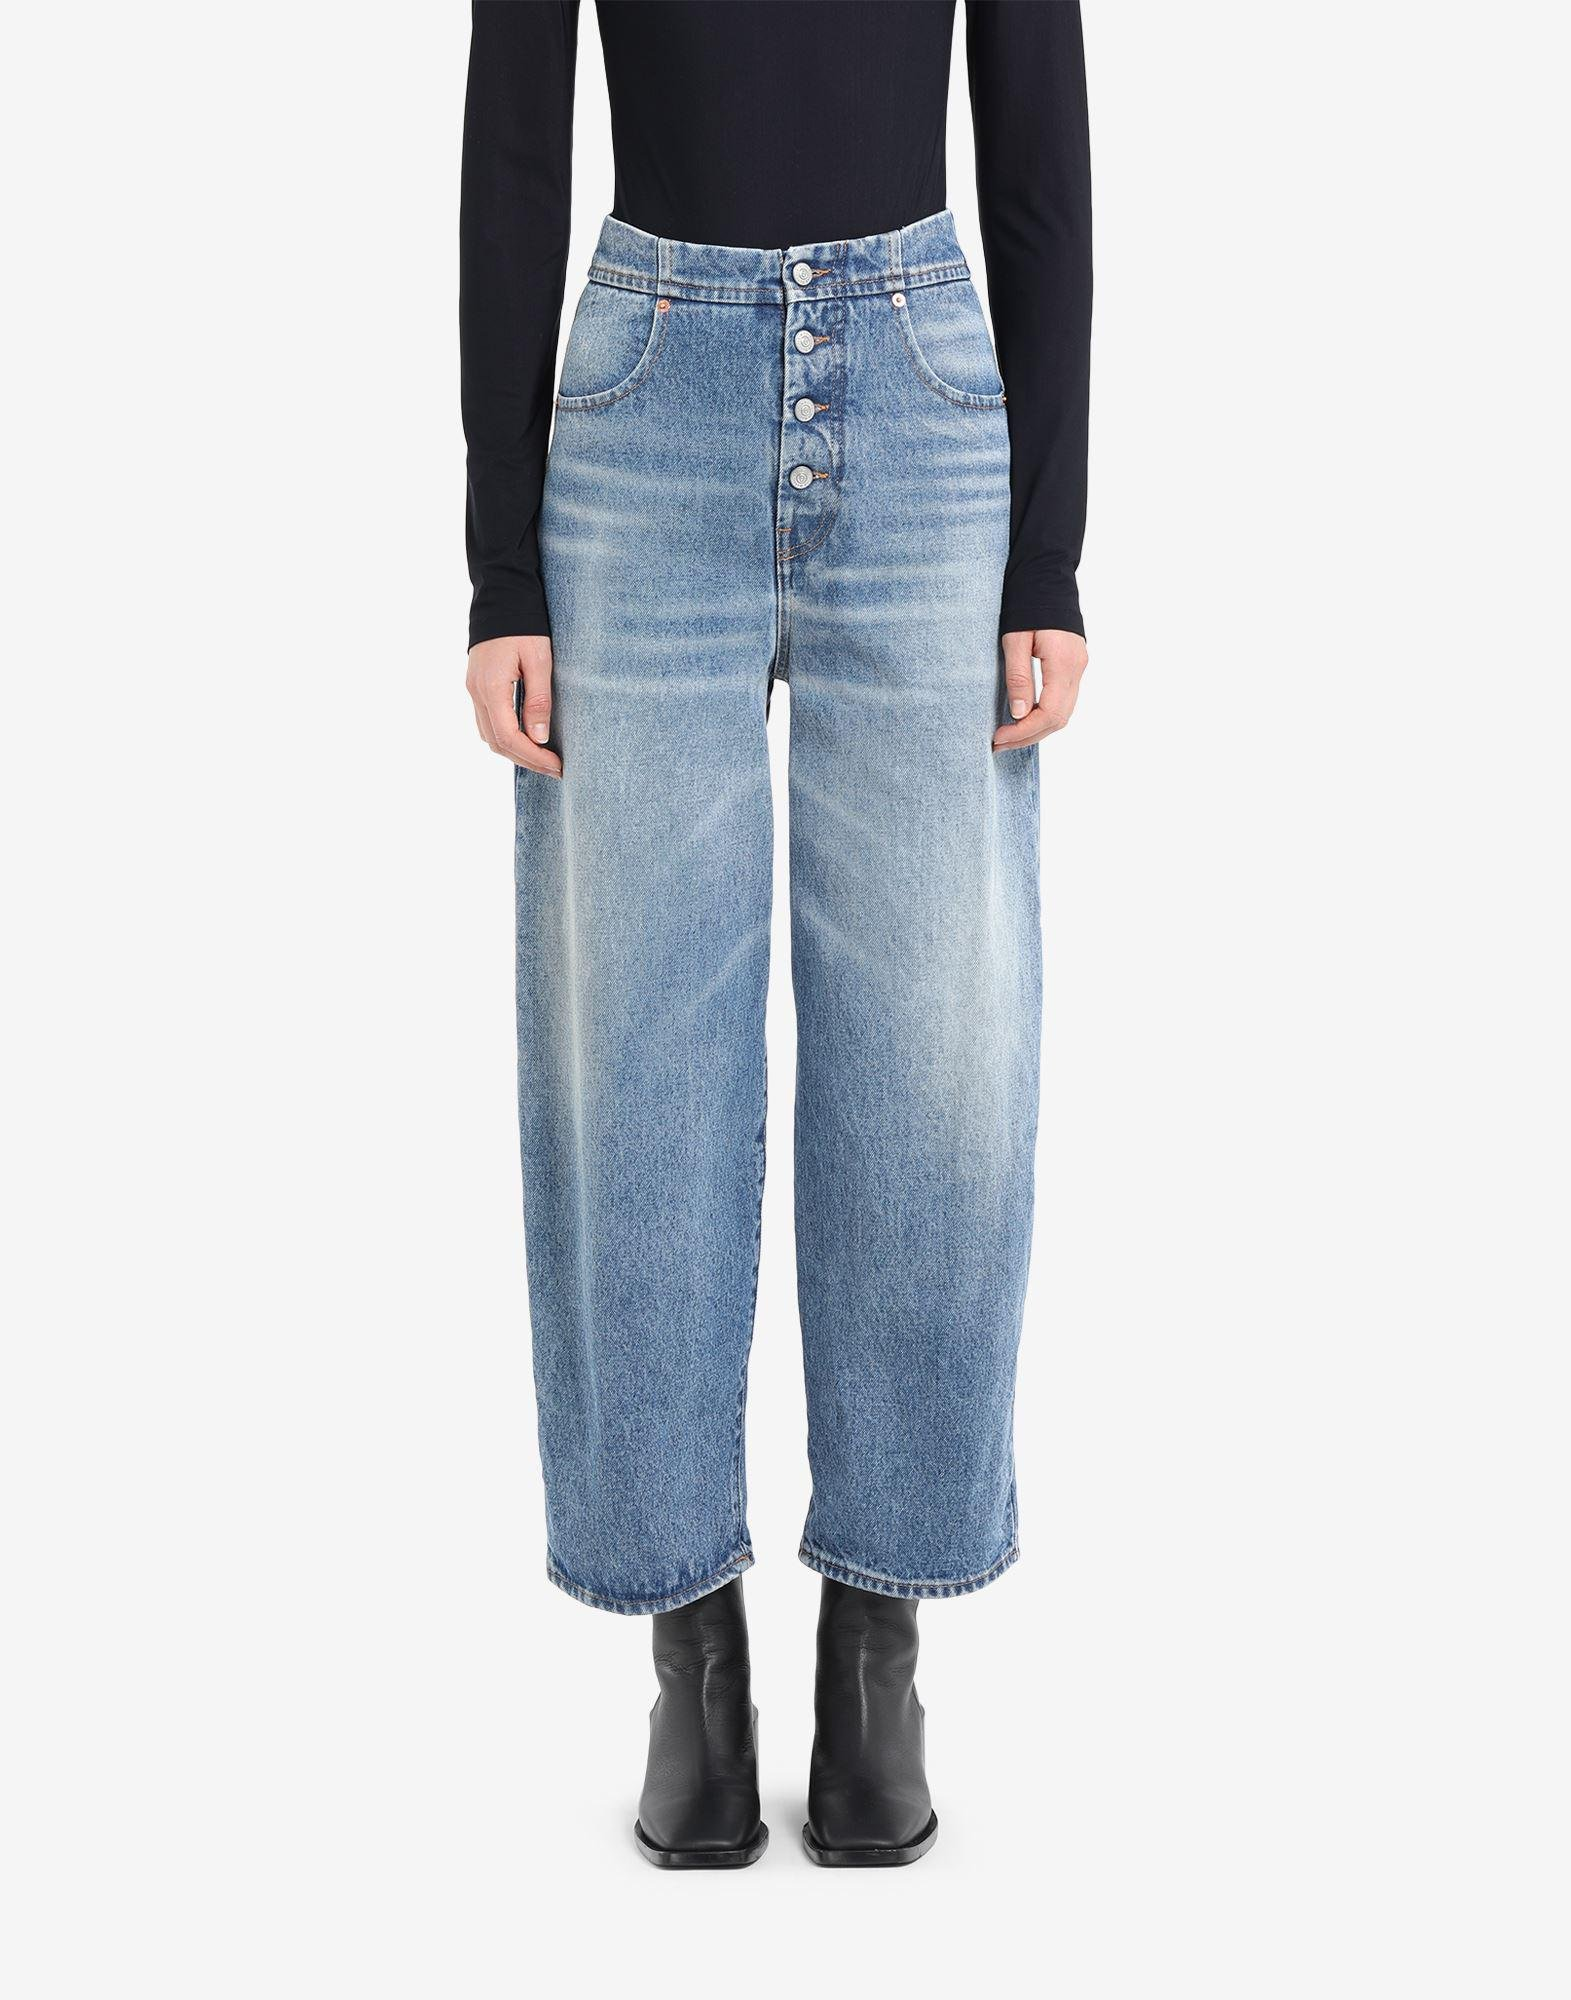 Carrot jeans 3